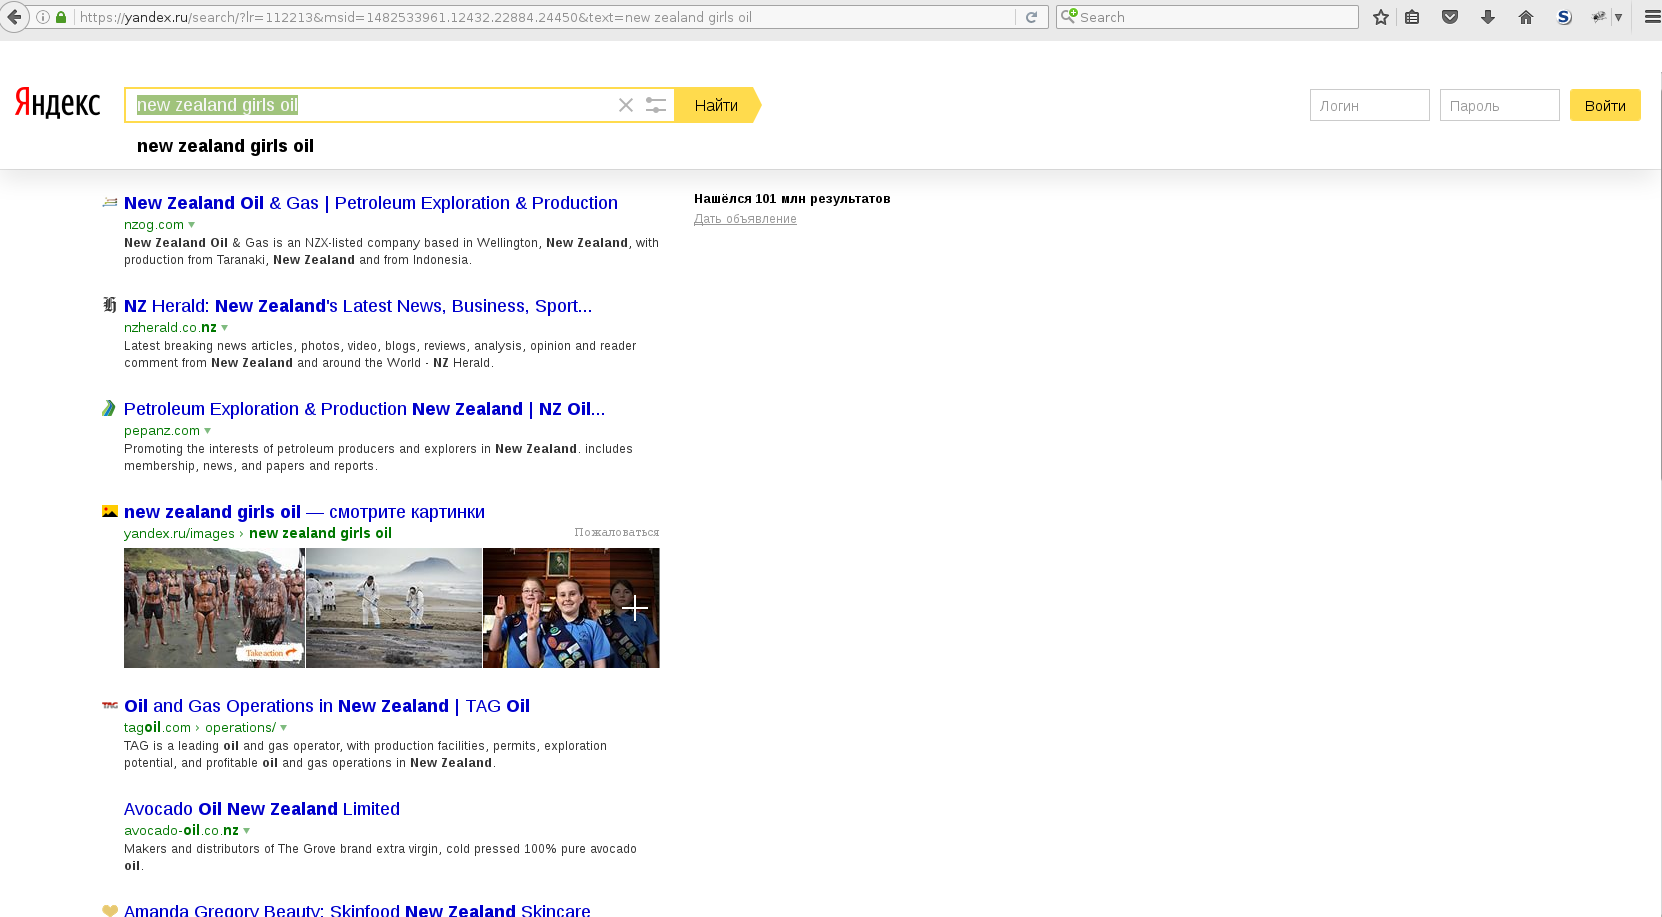 What is meant by the term content in the PS Yandex and Google